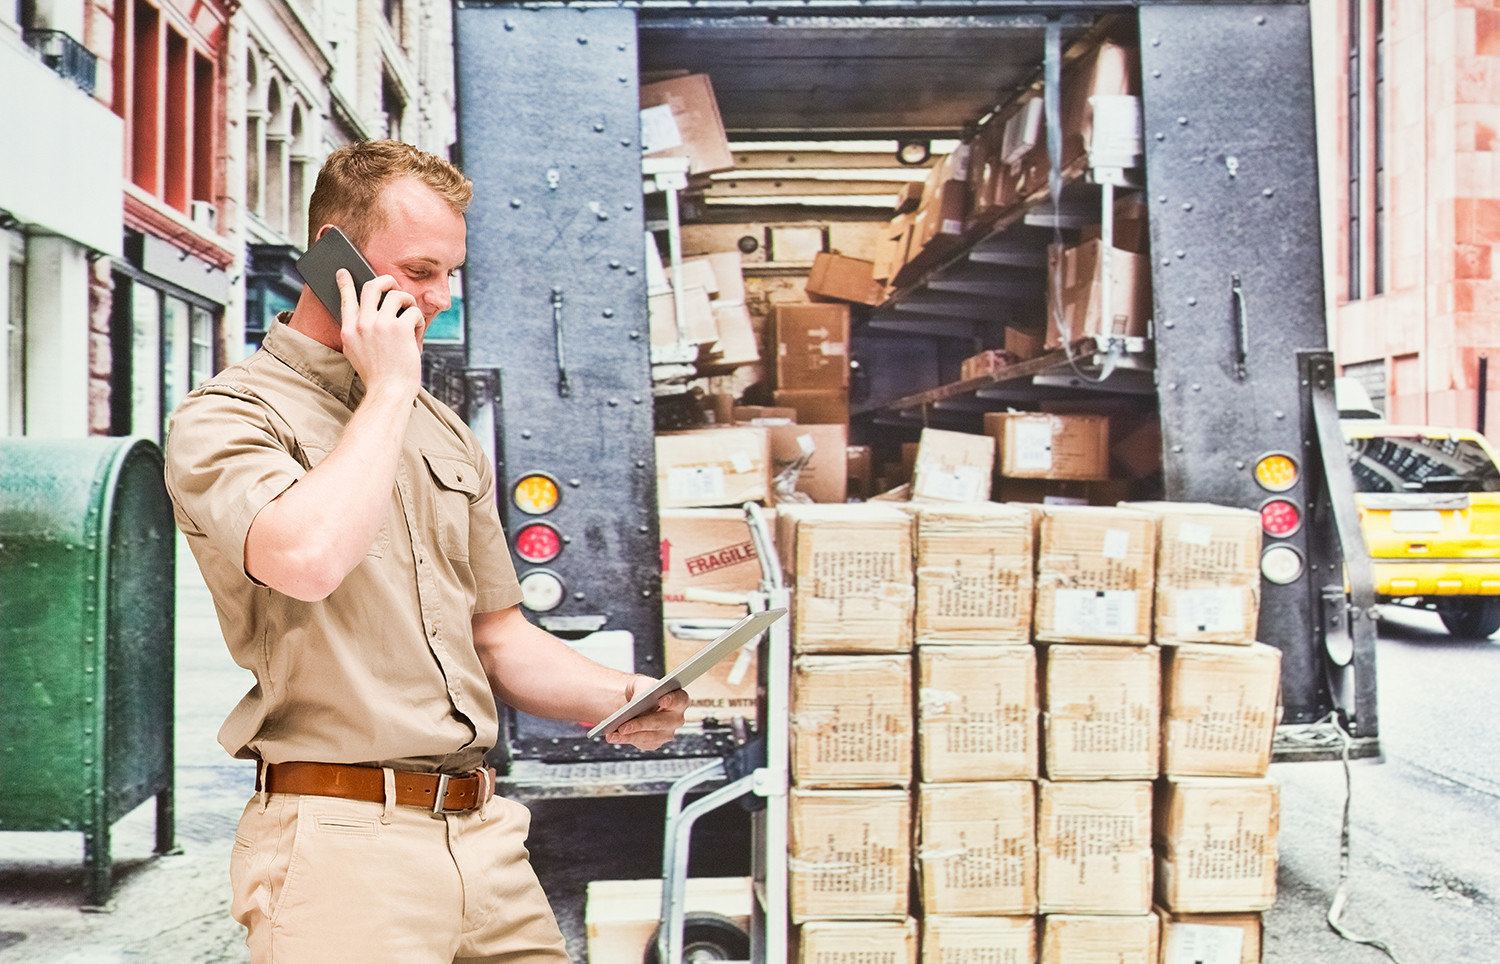 Field Mobility Applications - Inventory and Supply Chain Management|Australia CipherLab world leader in AIDC solutions